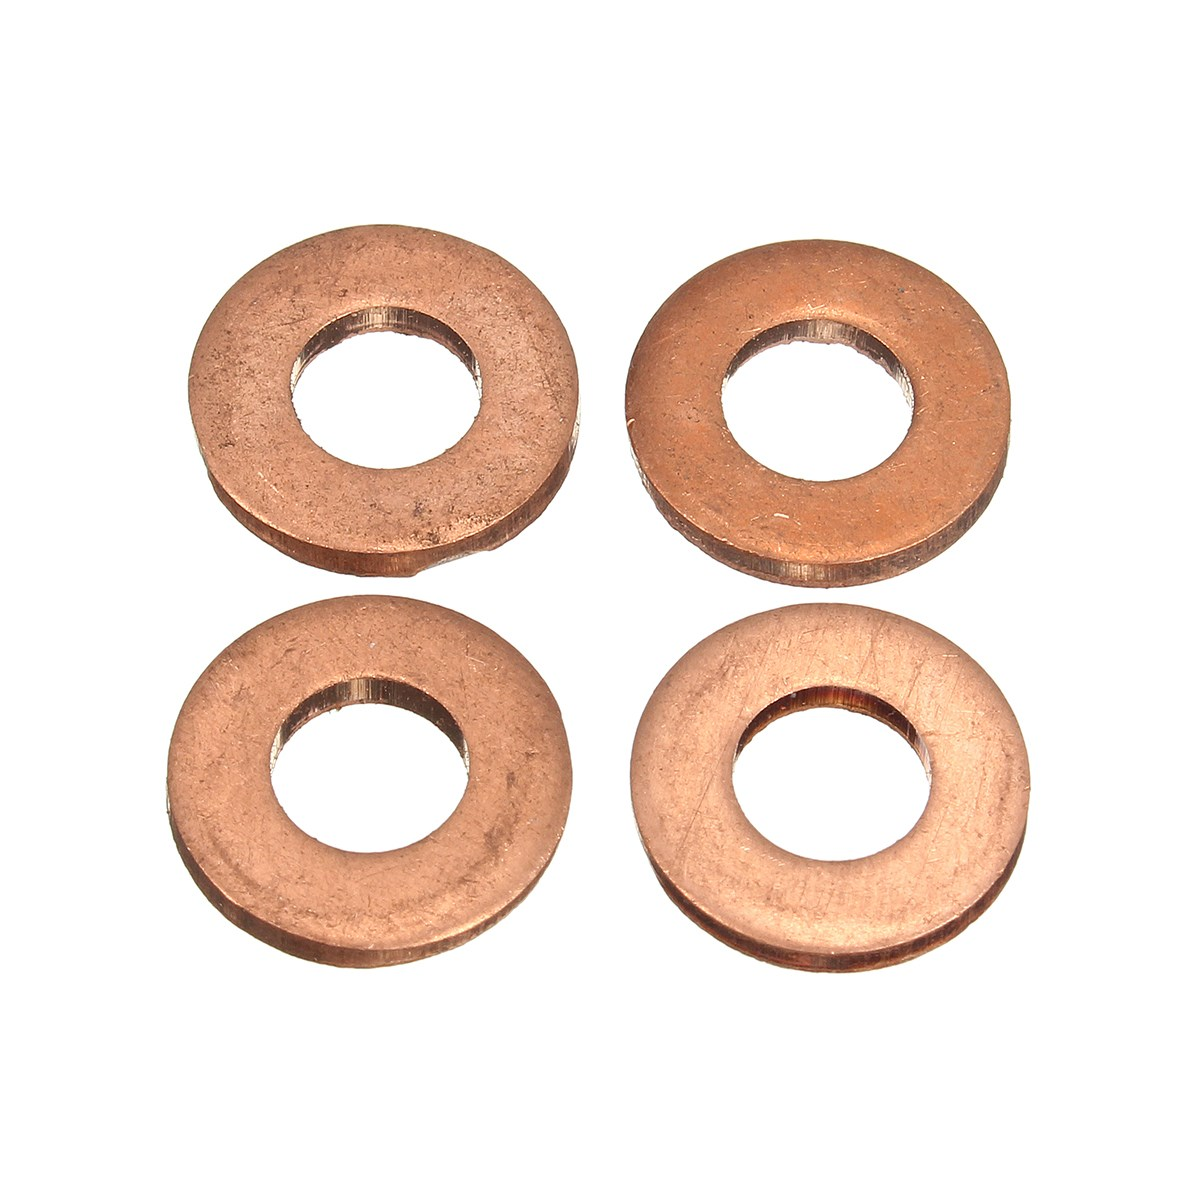 Pcs common injector nozzle washer seal copper for ford